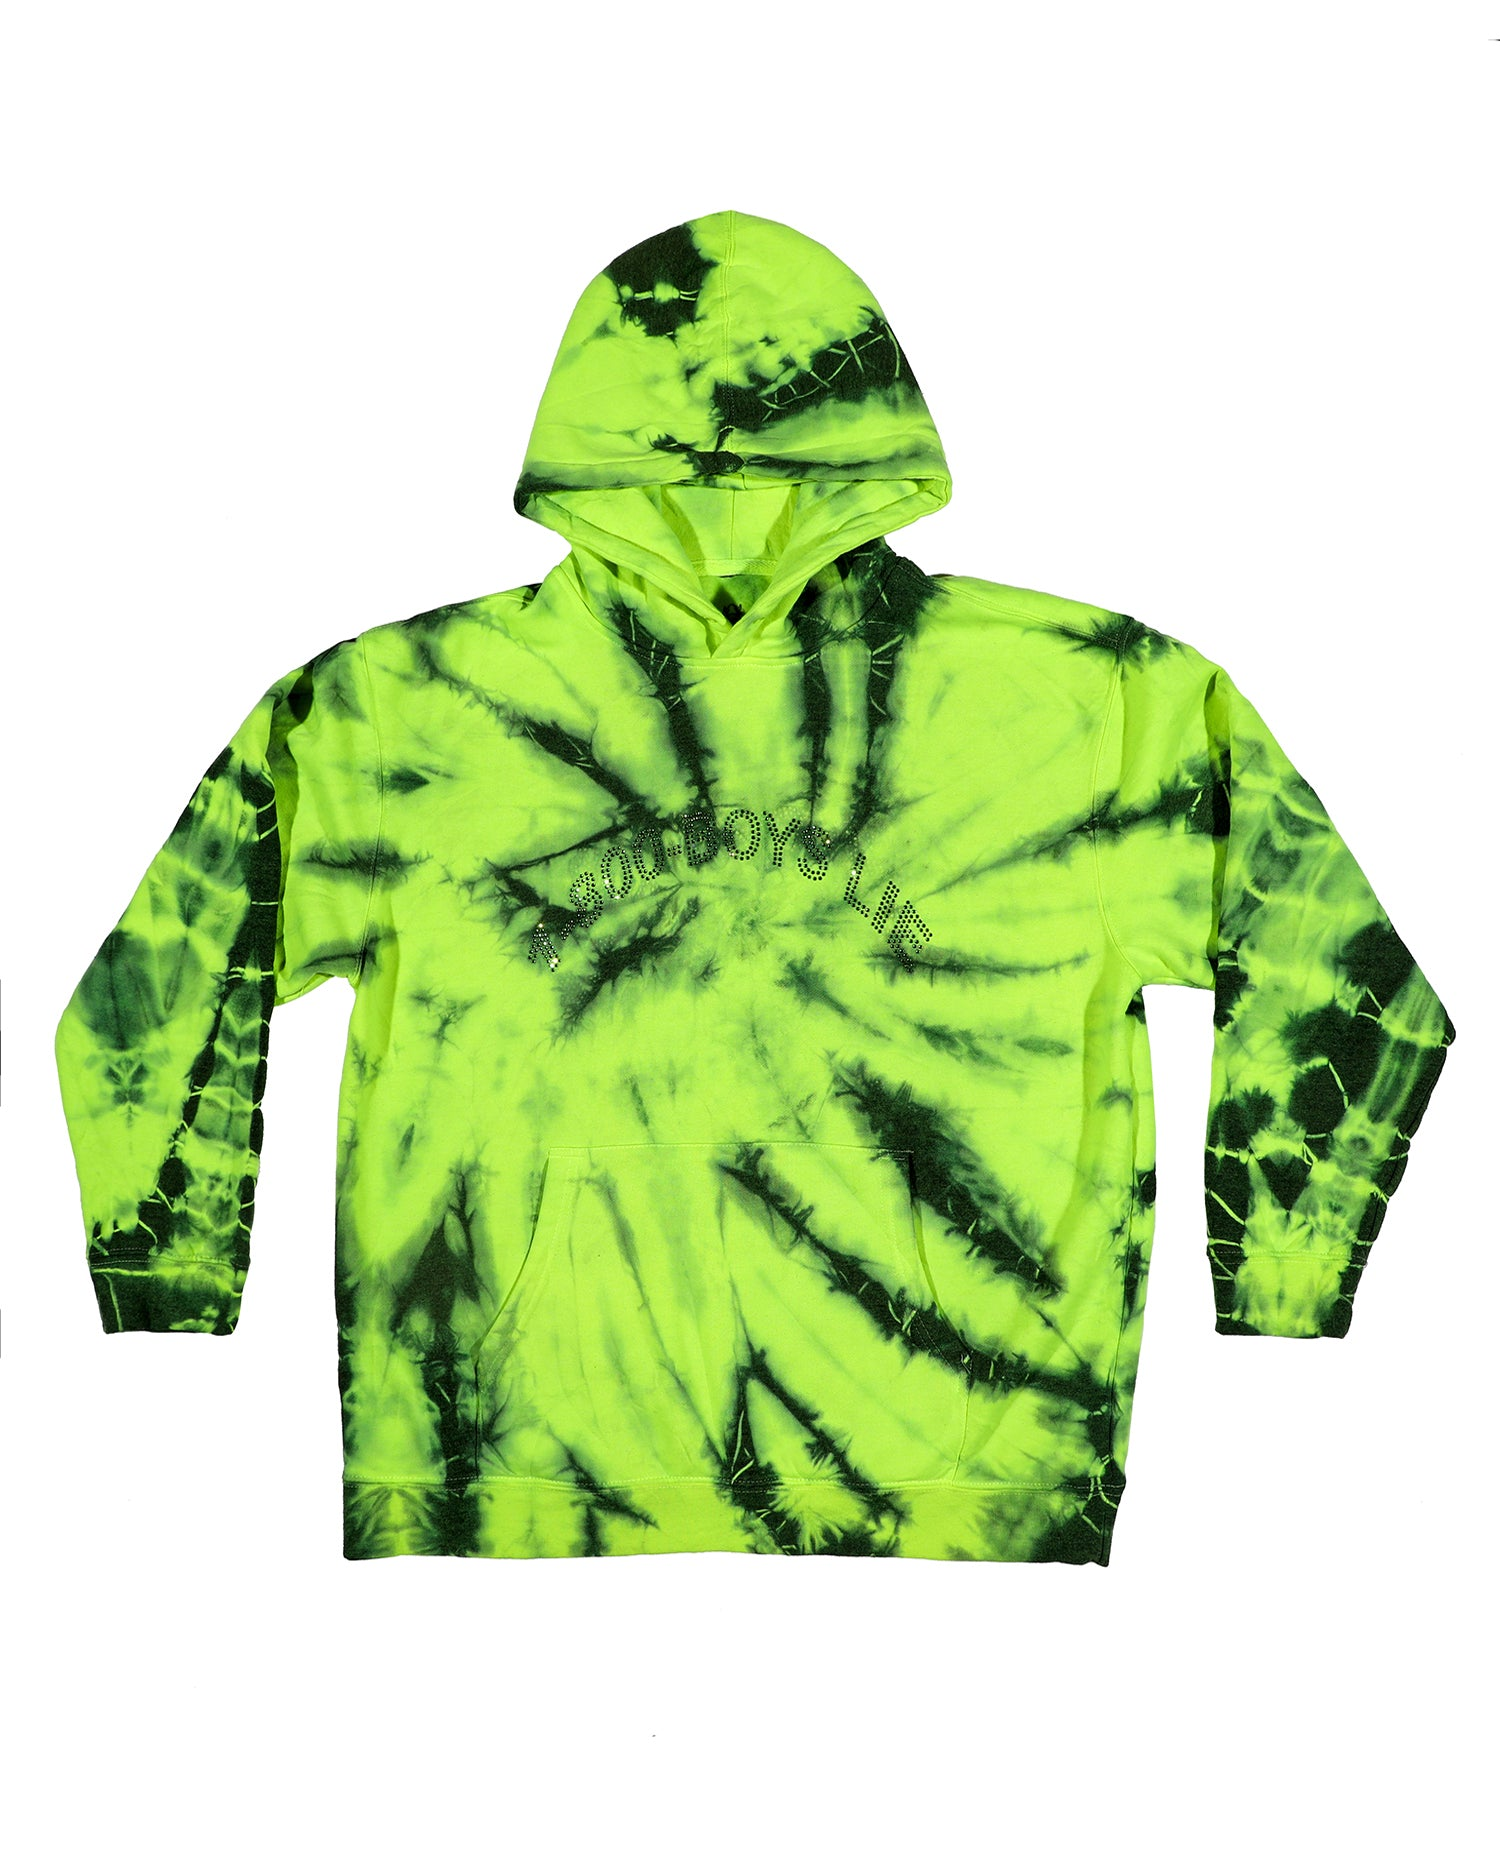 The Green 1-800 Remix Hoodie